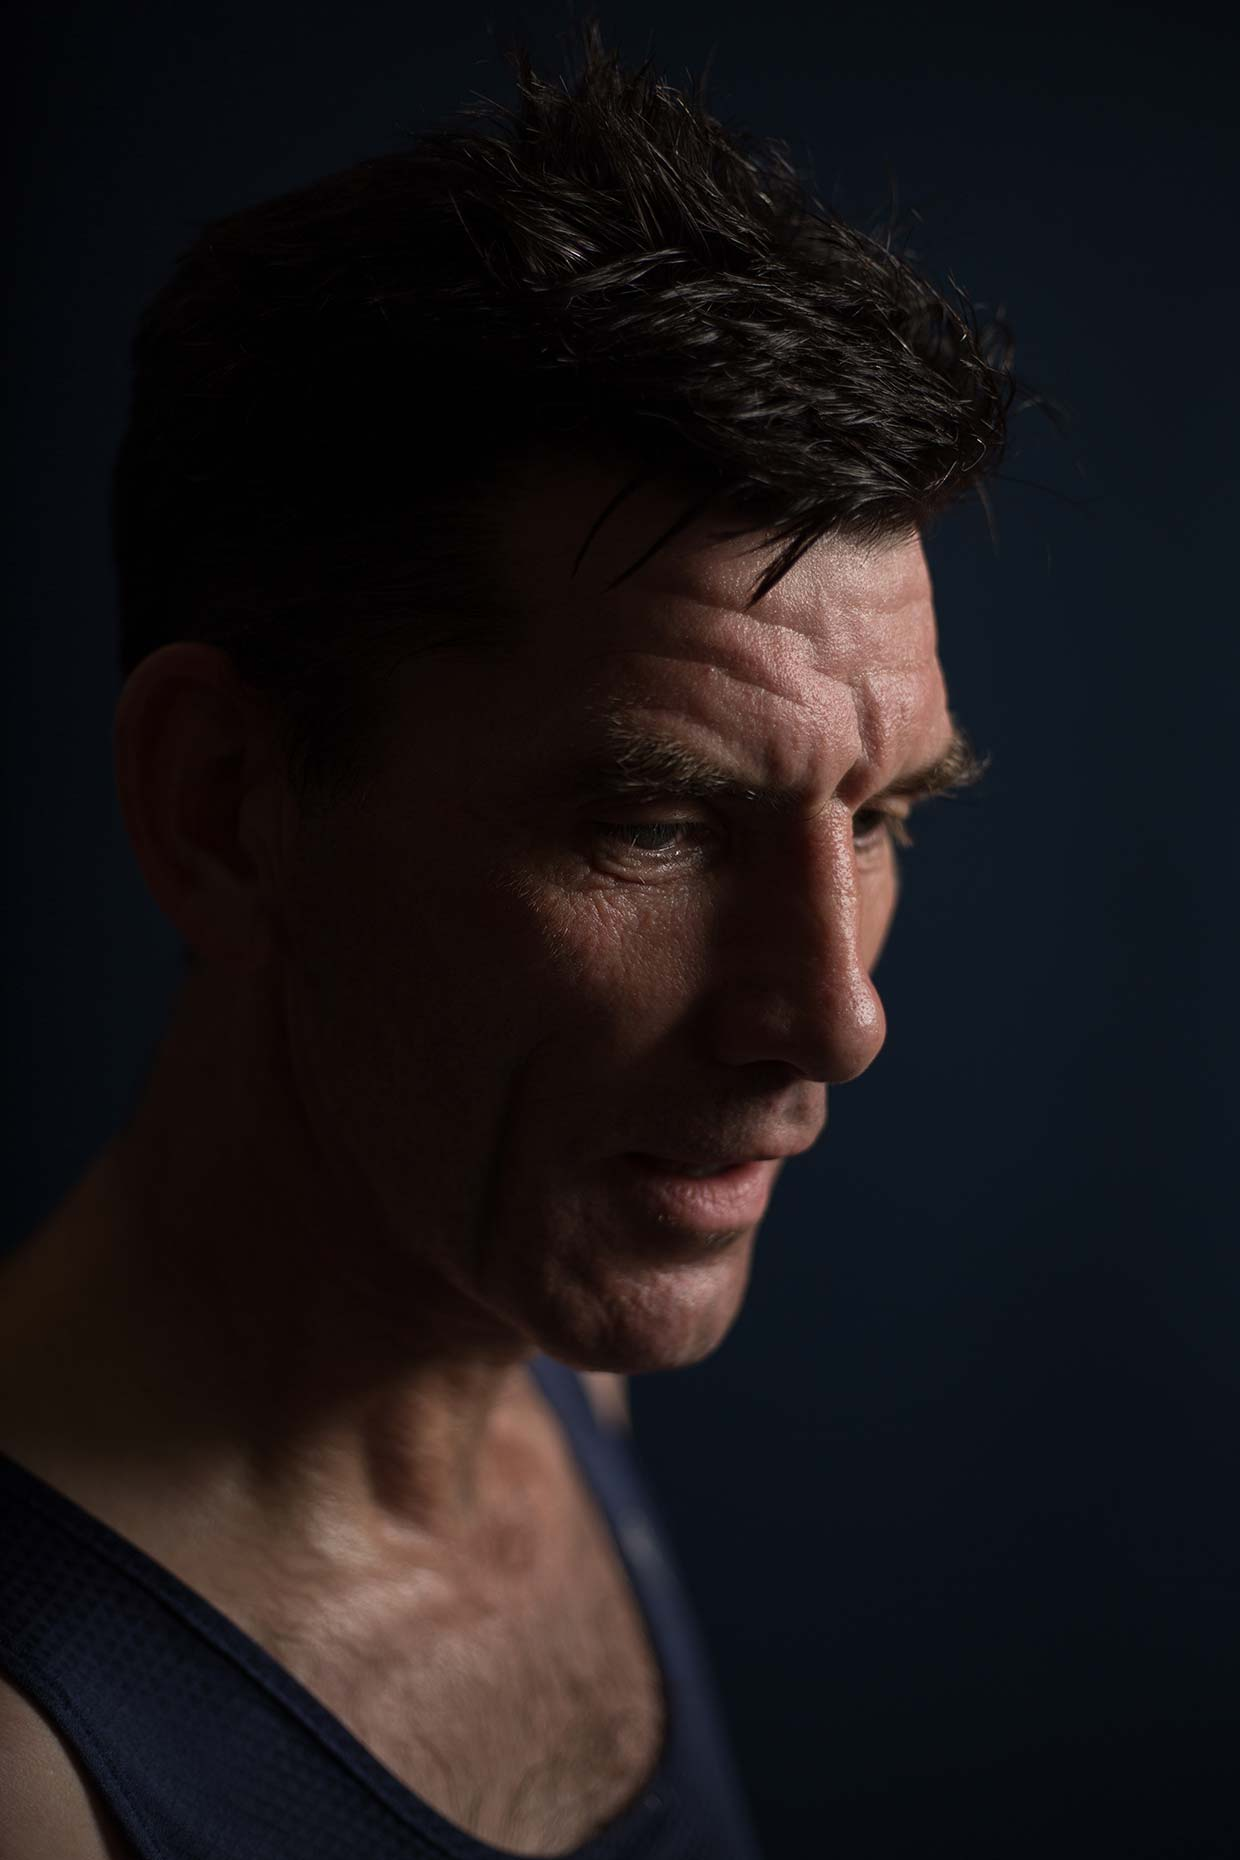 Portrait of Bellahouston Harriers runner Paul, by Scotland photographer